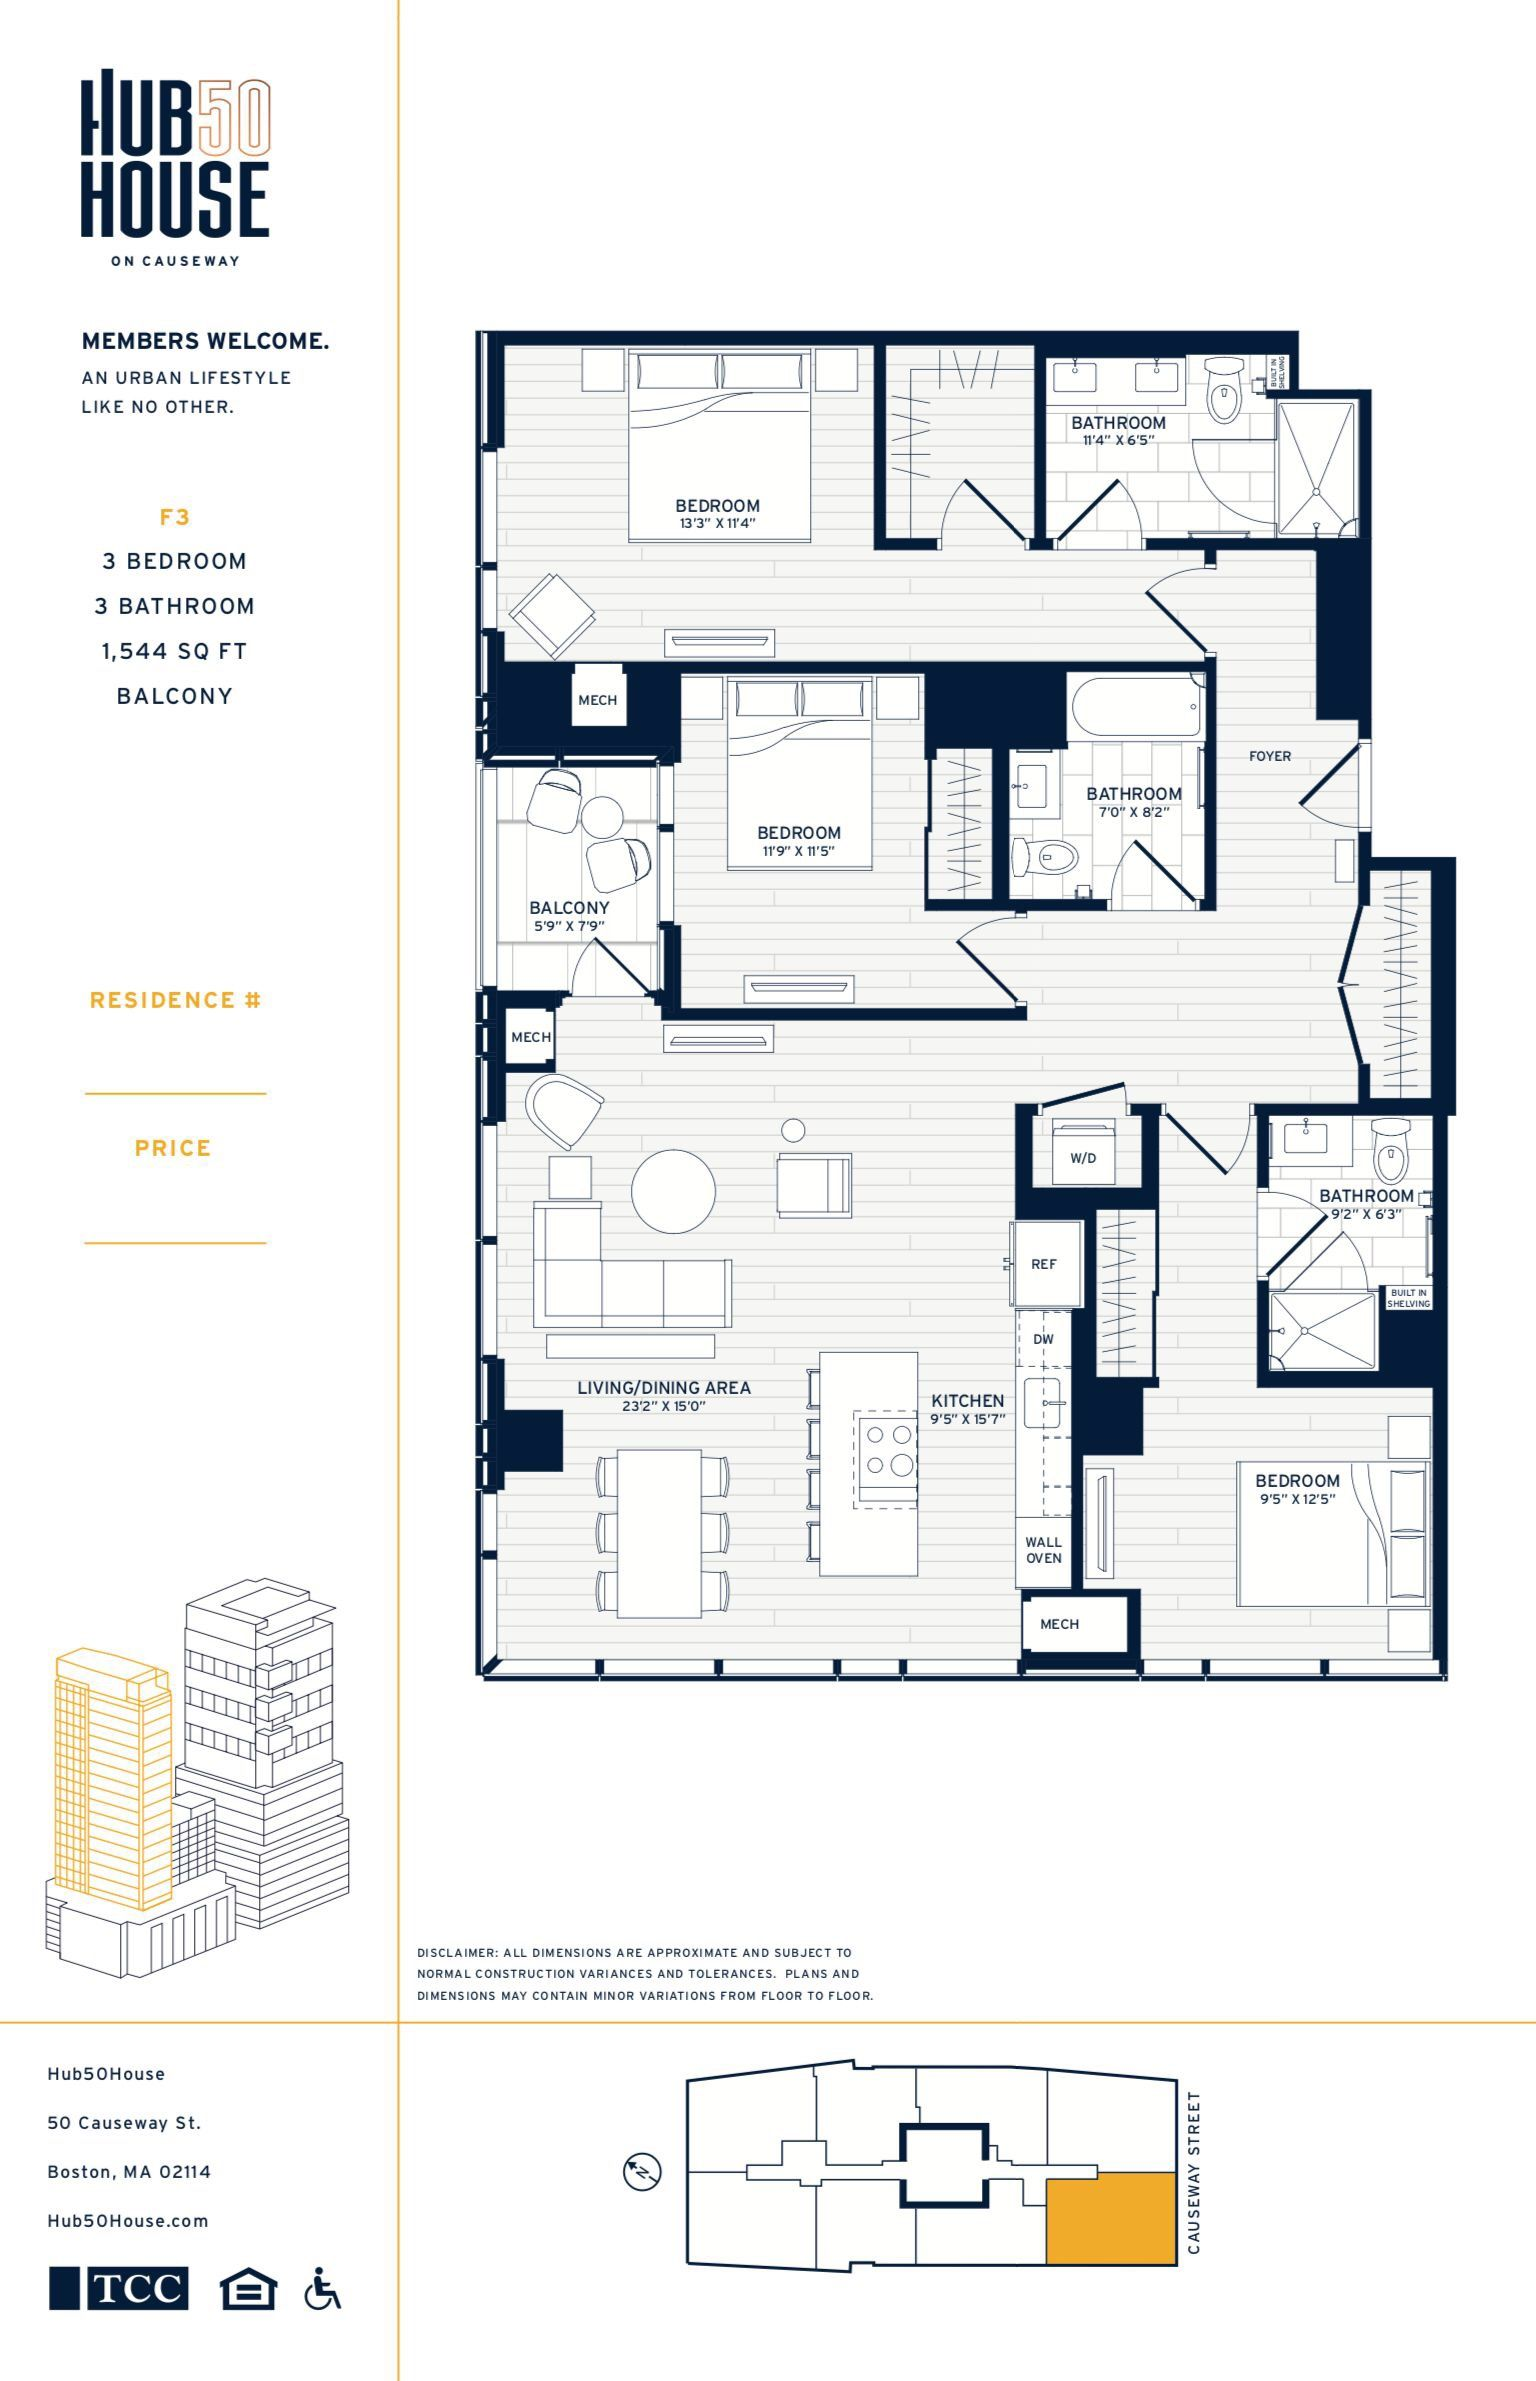 Hub 50 House On Causeway Boston 3 Bedroom Residence Condo Floor Plans Penthouse Apartment Floor Plan Floor Plans